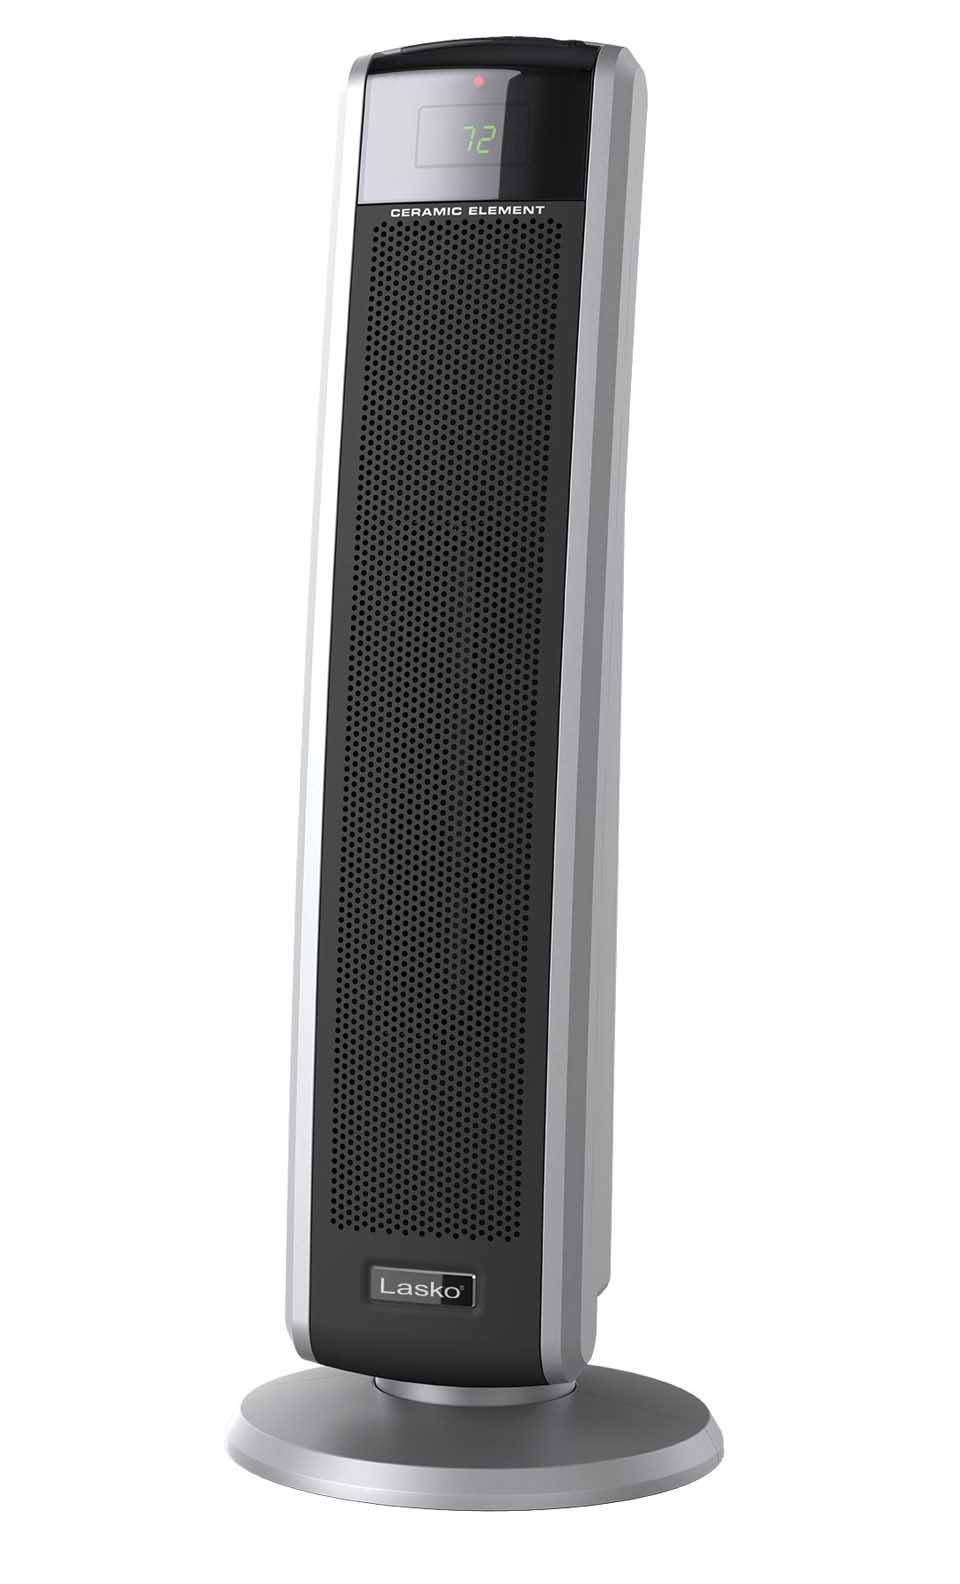 lasko ceramic tower heater lasko electric oscillating ceramic 1500 watt tower heater 30790